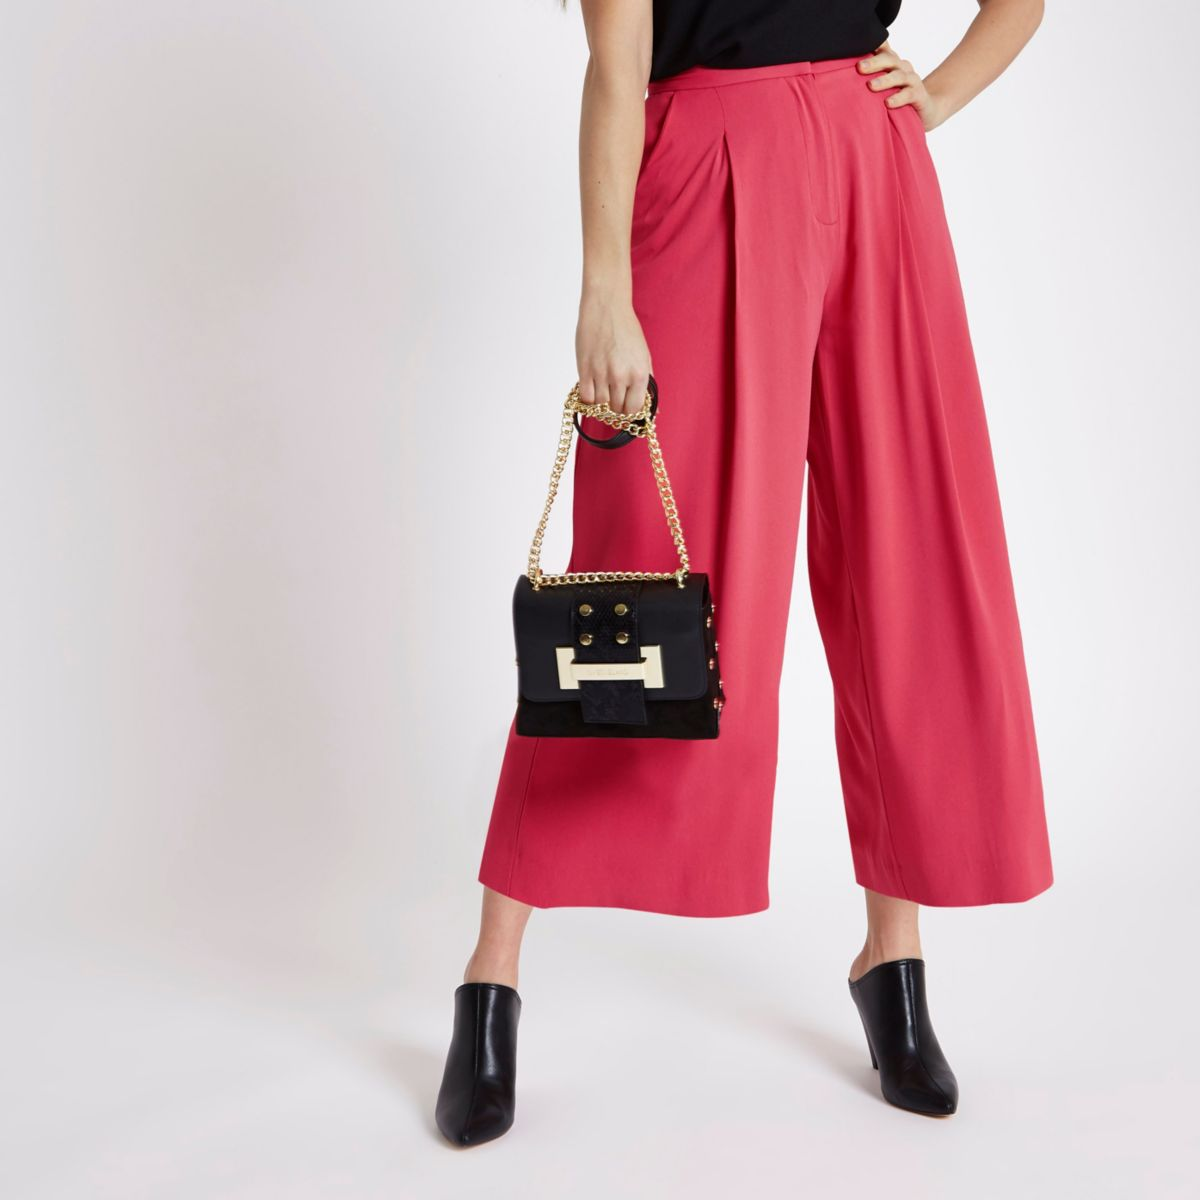 Coral pink culottes